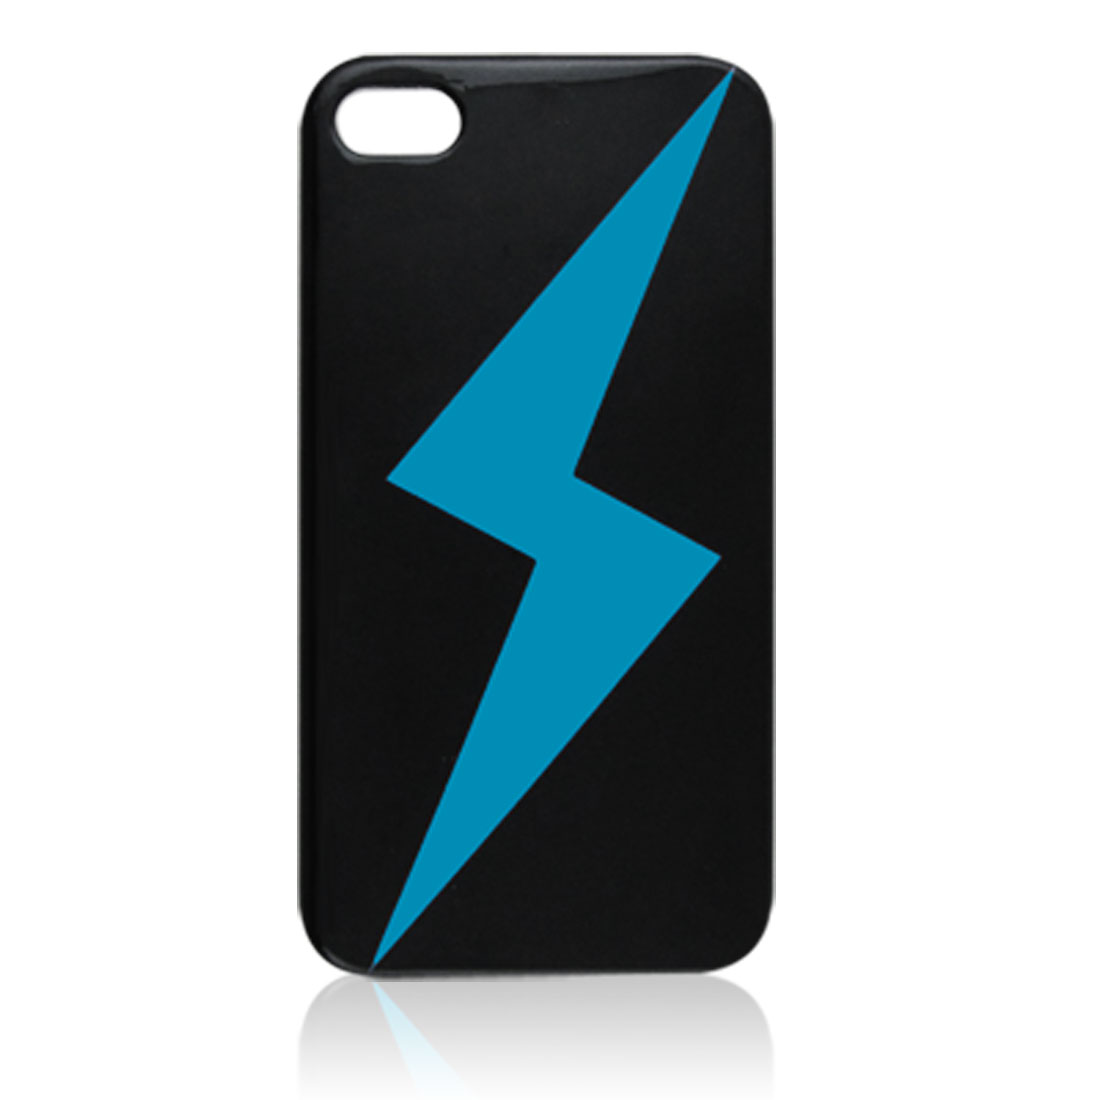 Blue Lightning Print IMD Black Hard Plastic Cover for iPhone 4G